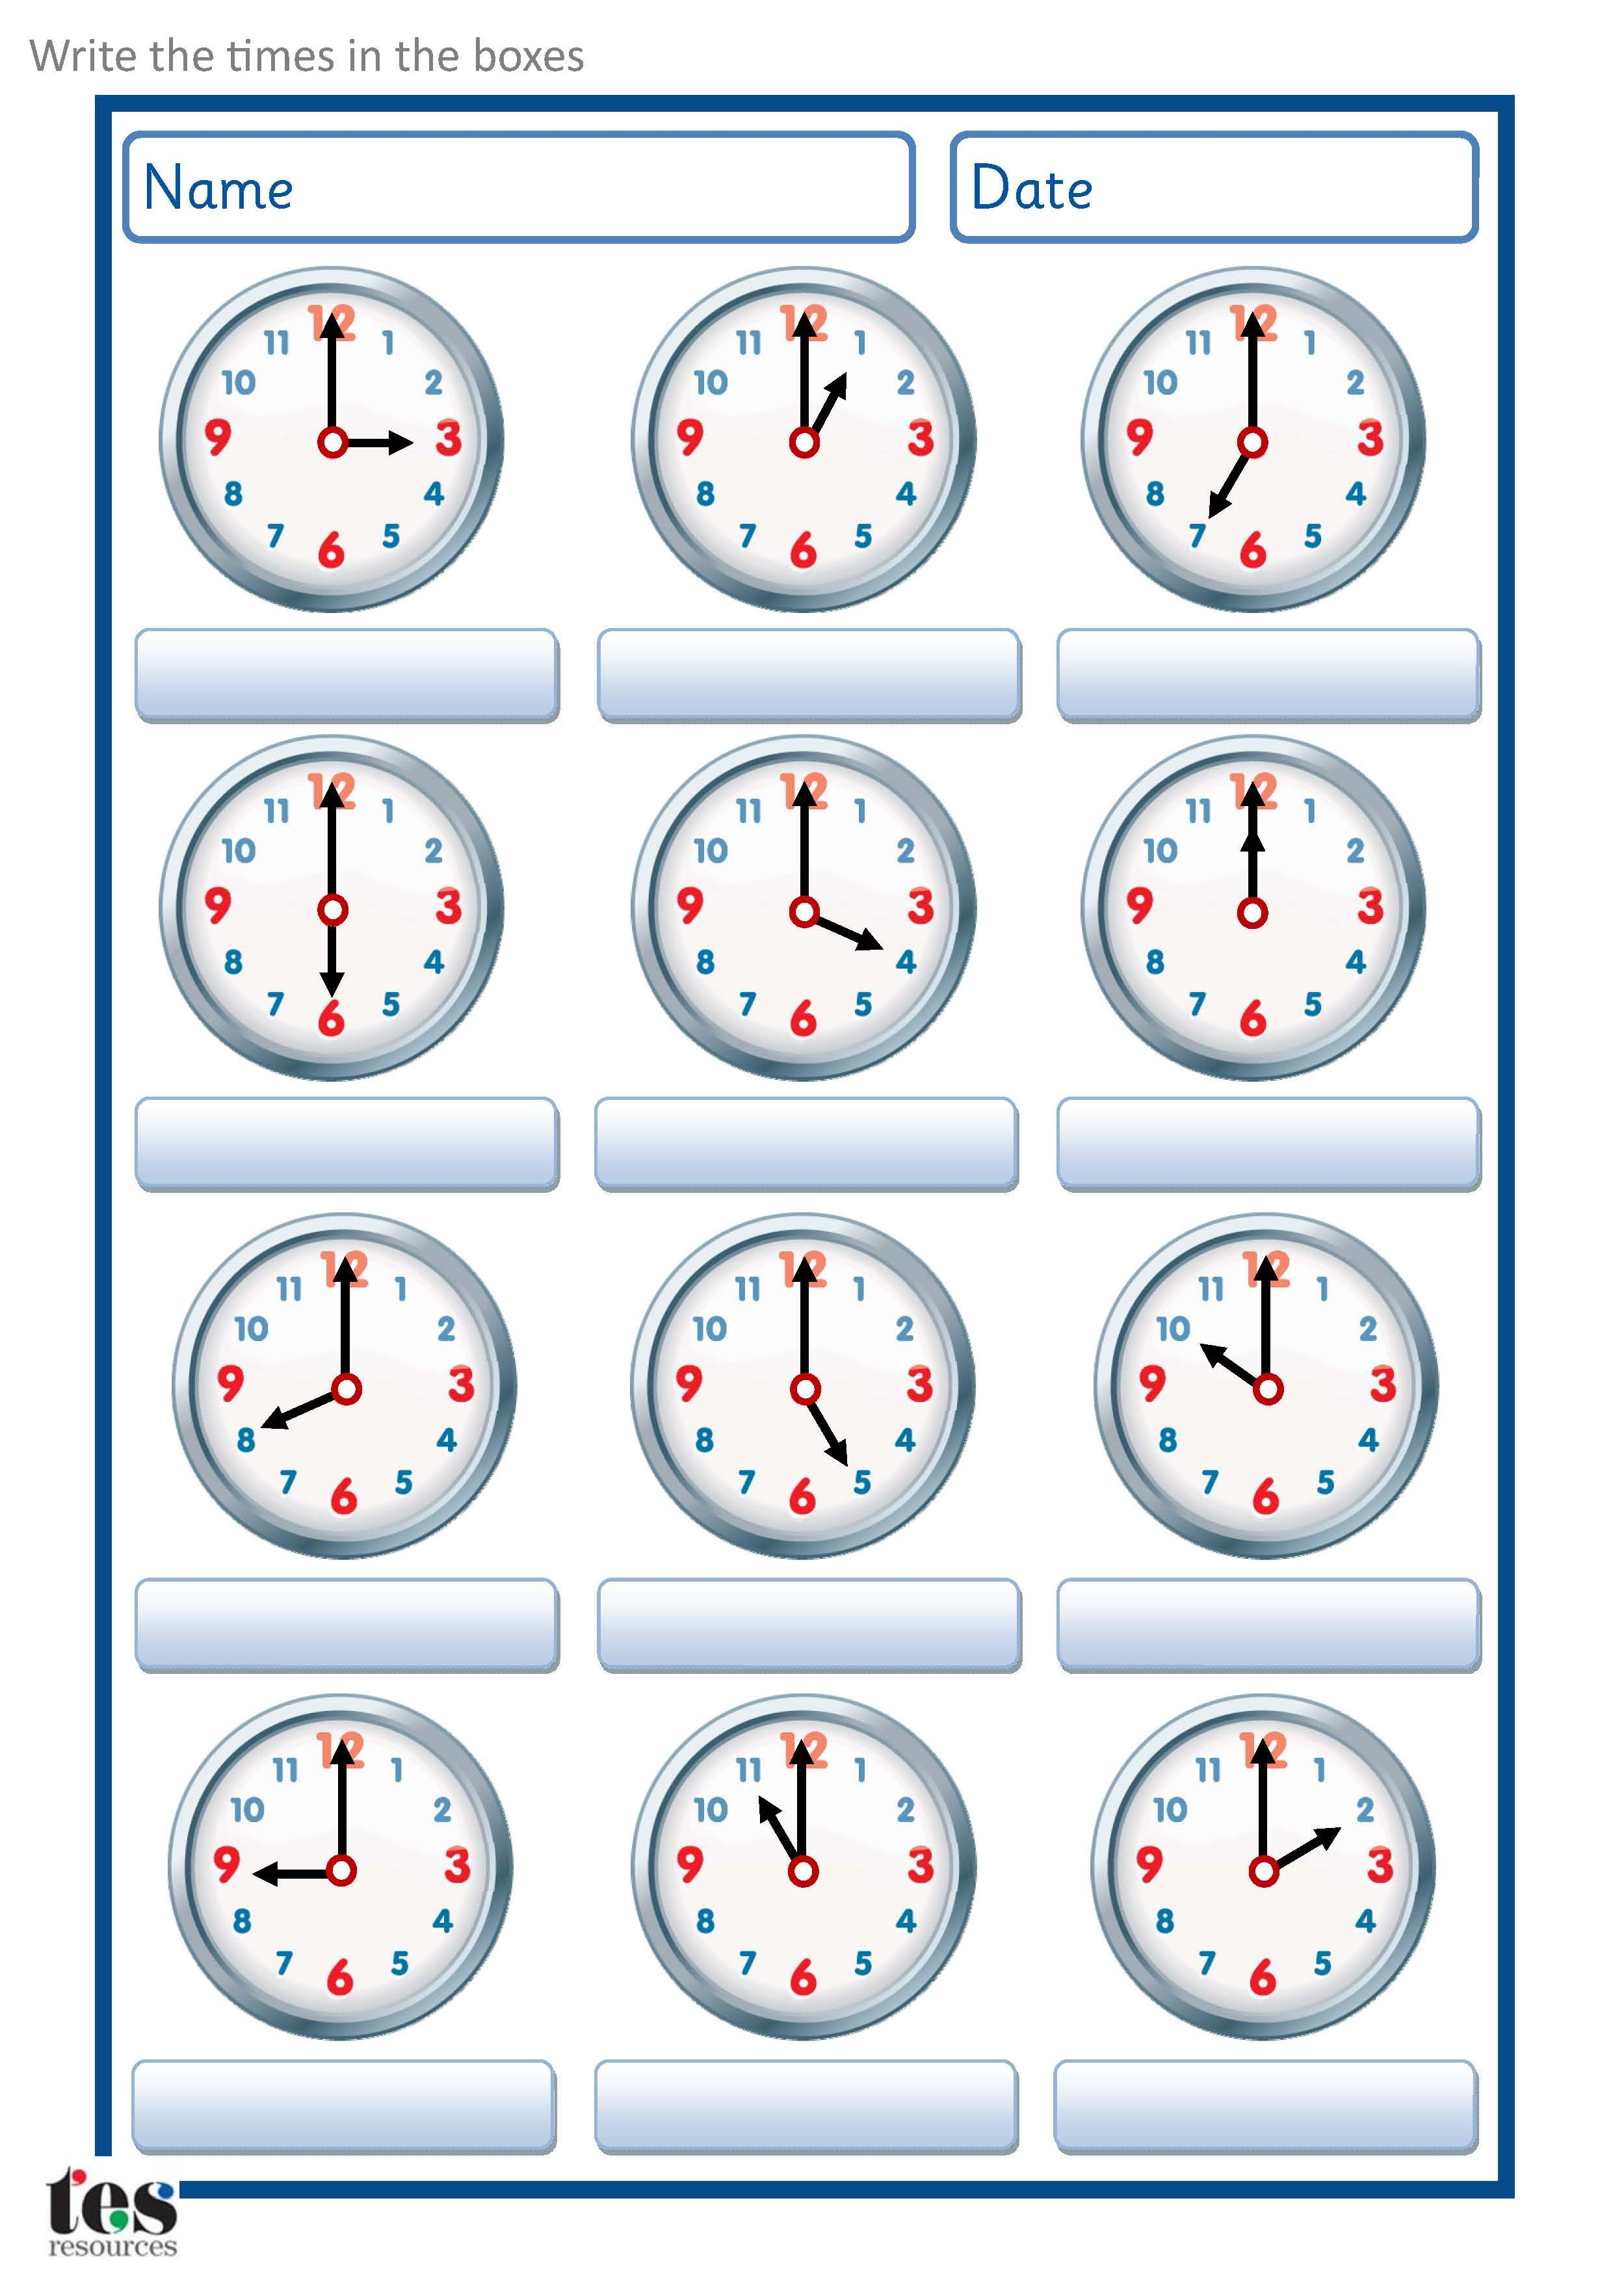 A Set Of Worksheets To Use When Developingogue Clock Skills Set Contains 2 Sheets Each